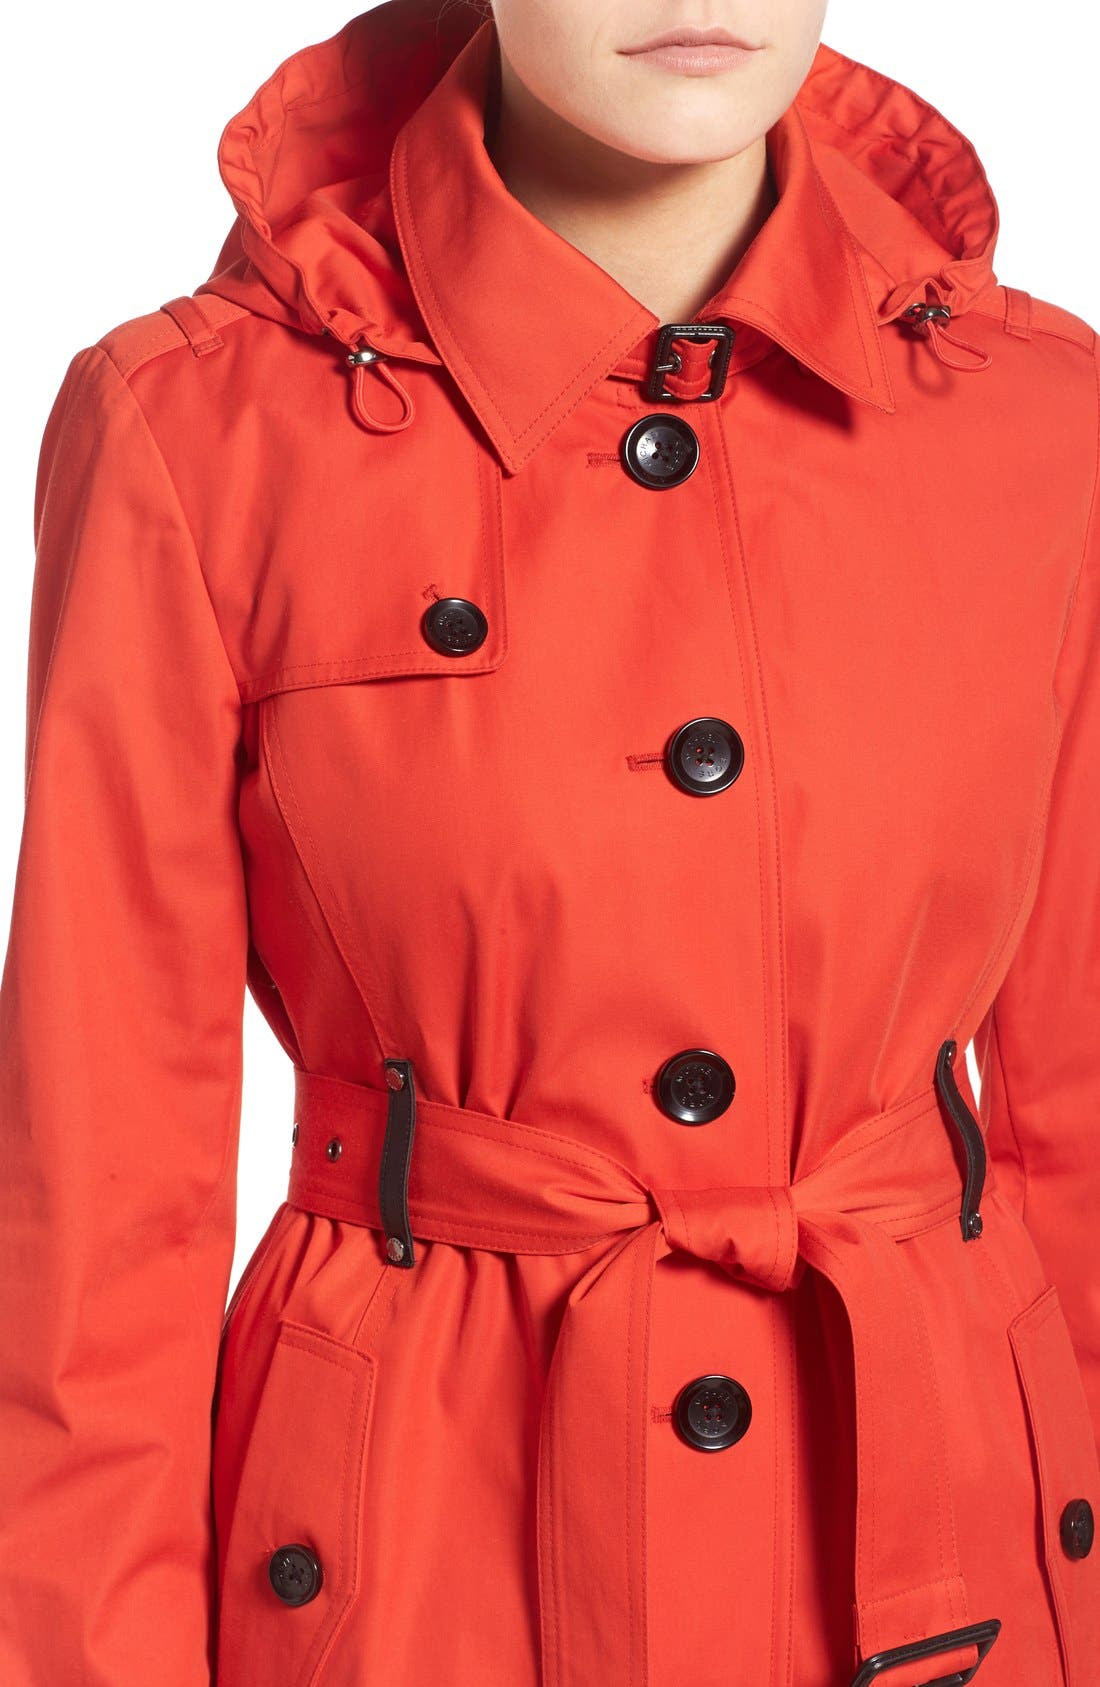 Alternate Image 4  - MICHAEL Michael Kors Single Breasted Raincoat (Regular & Petite)